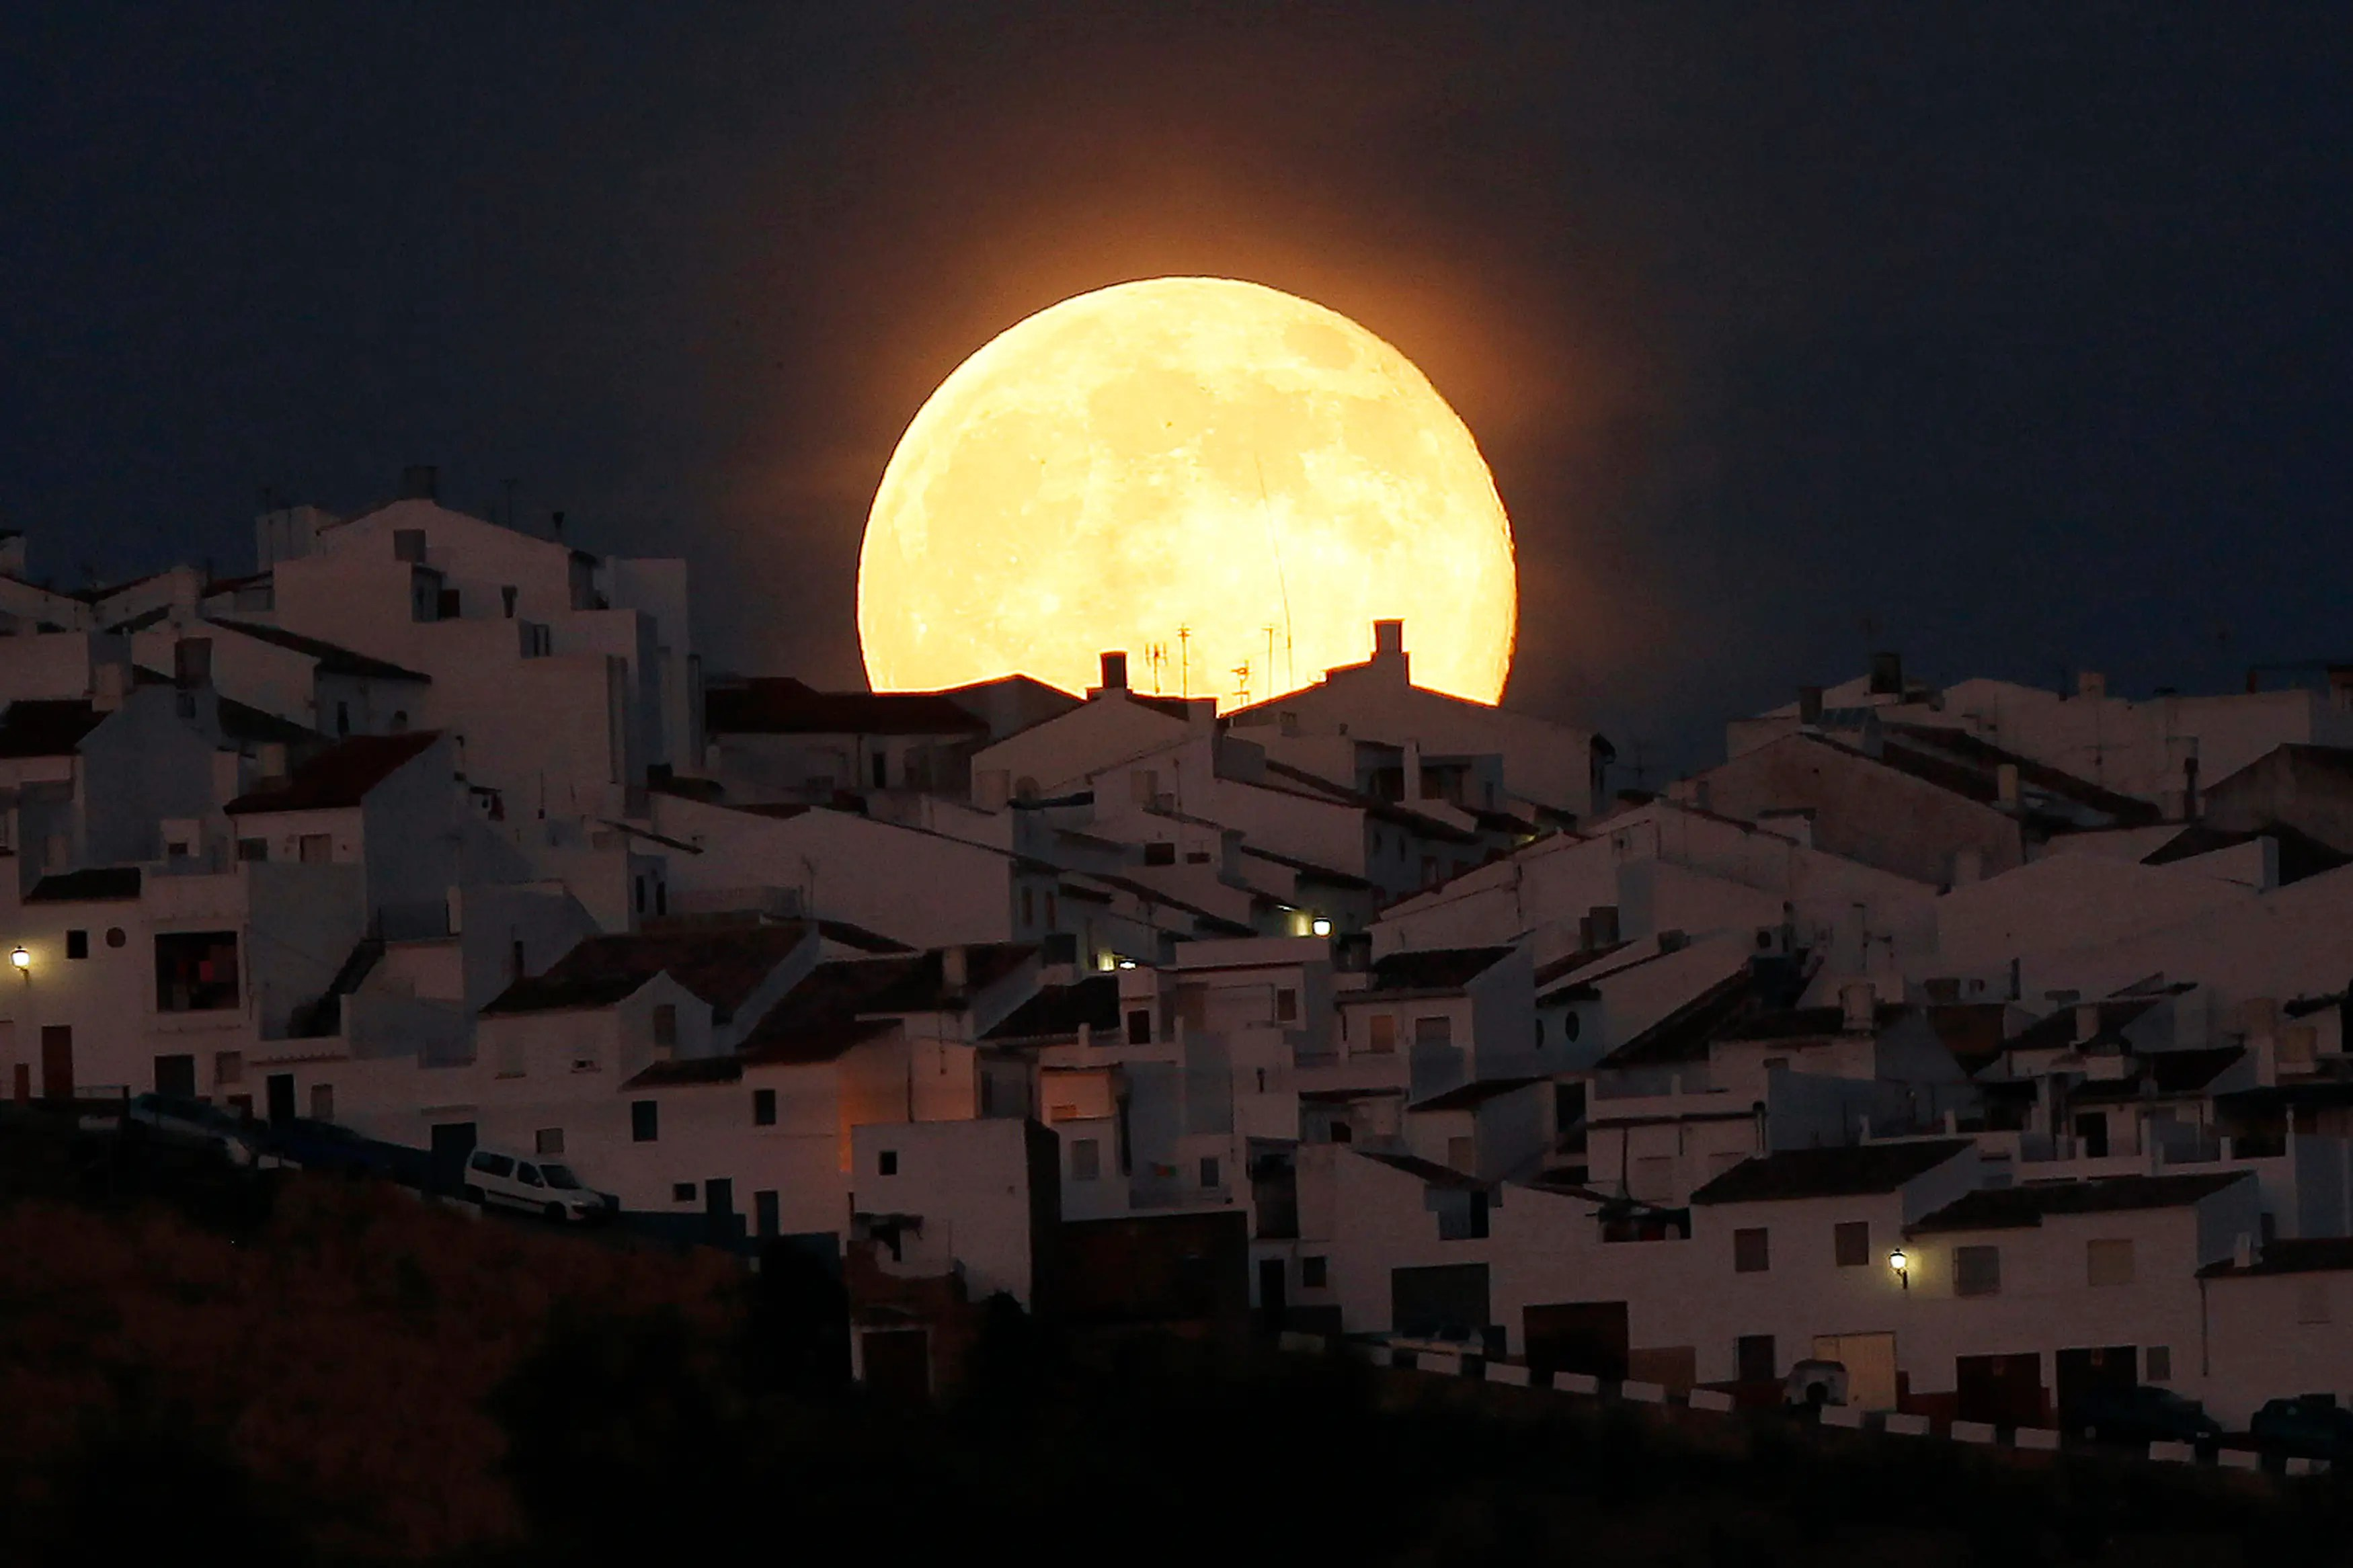 On Saturday, July 12, a supermoon rose over the Earth. Here it is over Olvera, Spain.